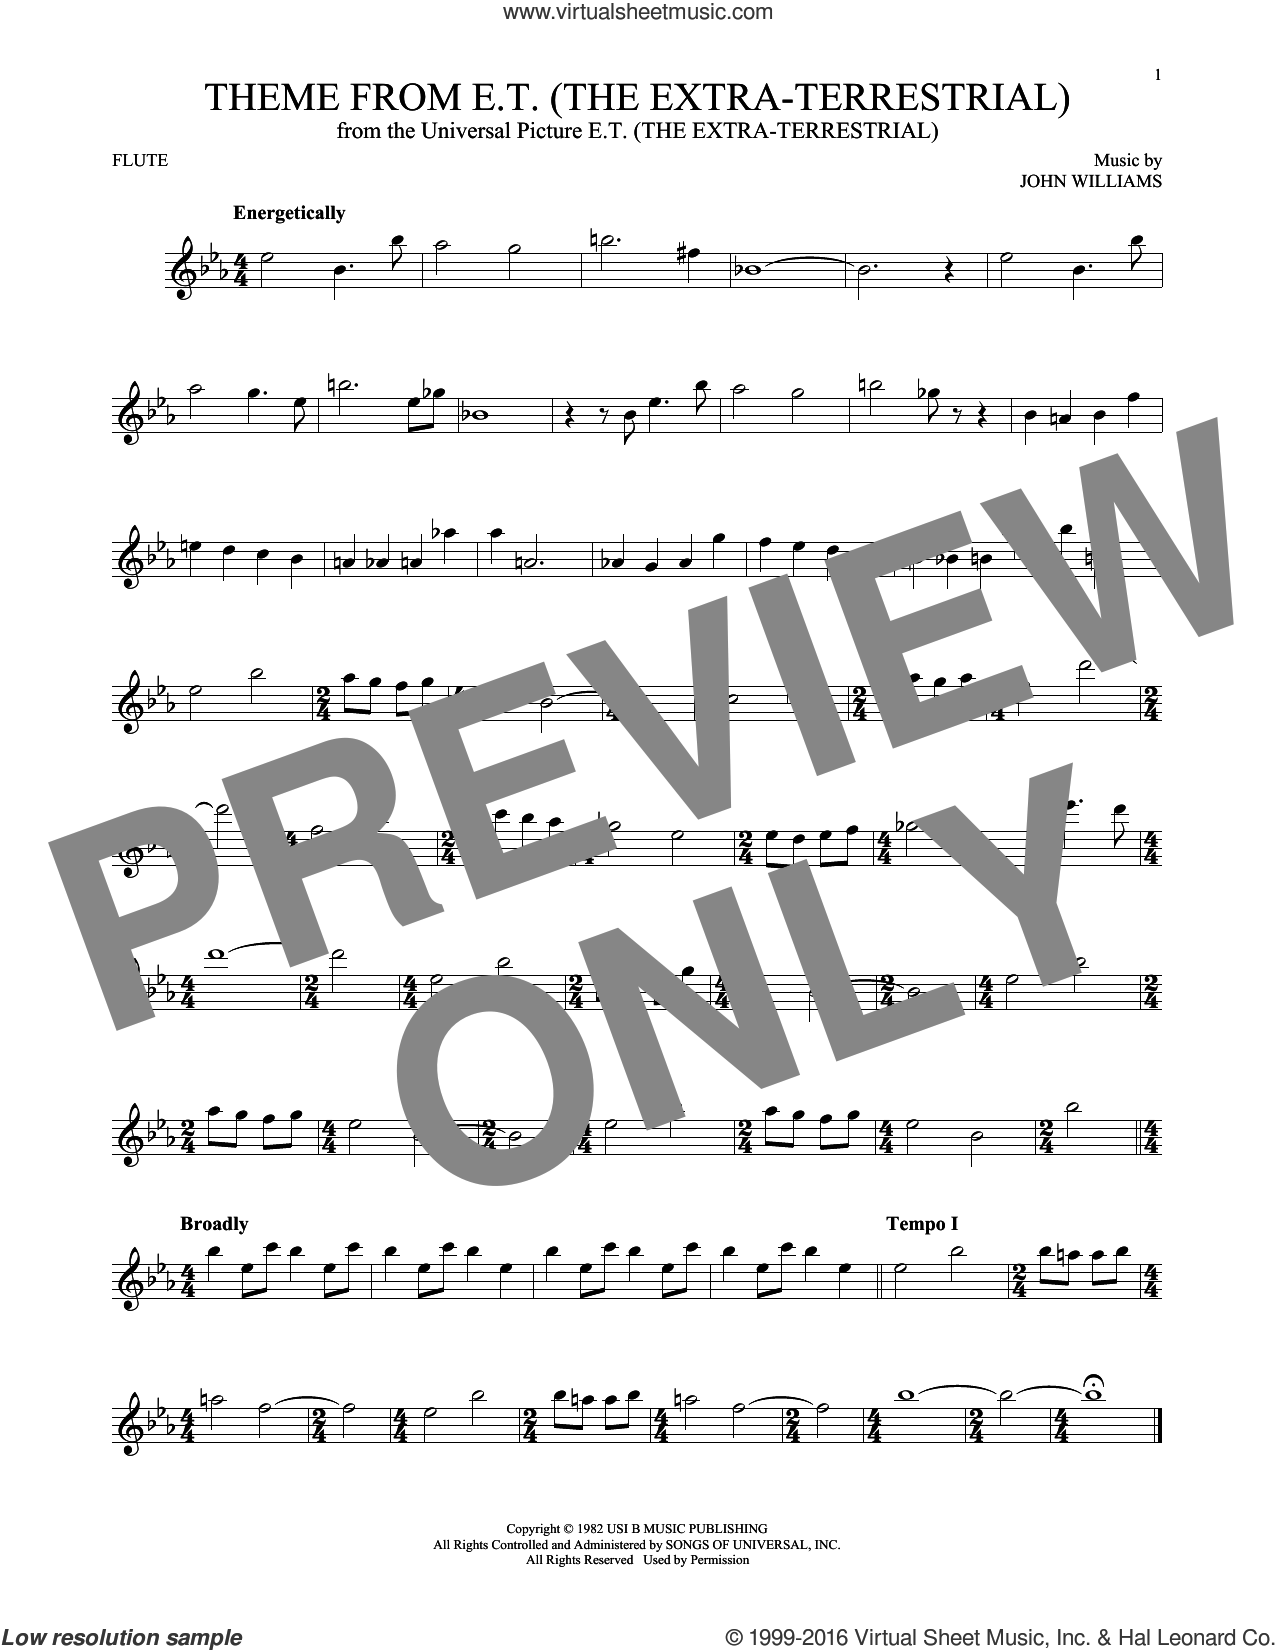 Theme From E.T. (The Extra-Terrestrial) sheet music for flute solo by John Williams, intermediate skill level